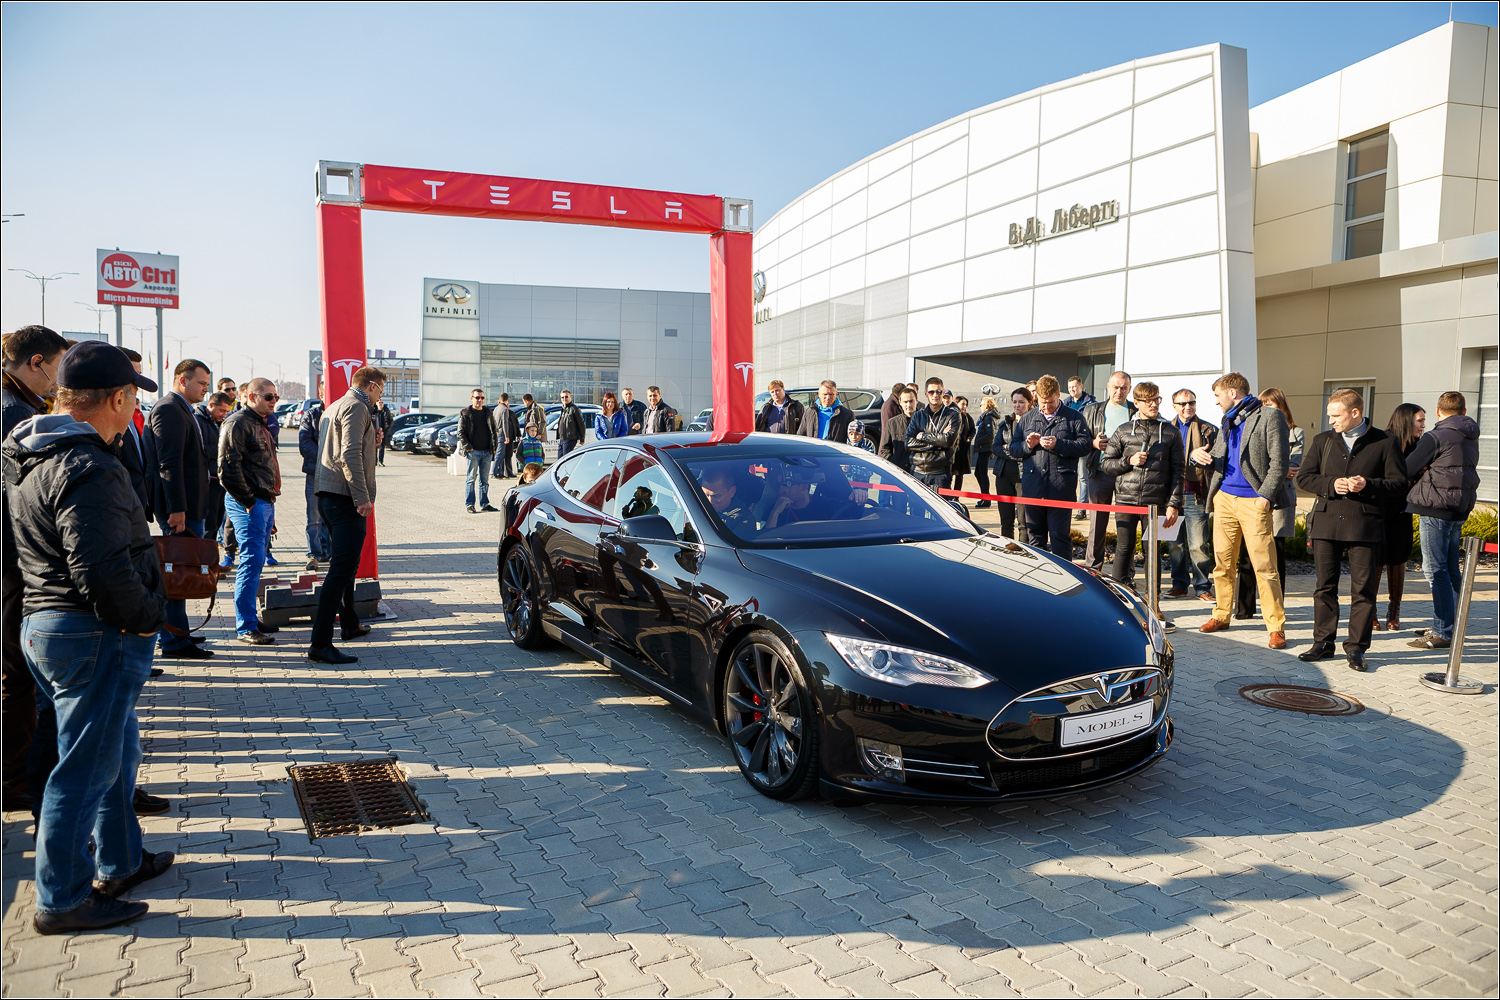 The worlds fastest electric car - Benish Gps And The Fastest Electric Car In The World Tesla Model S Presentation